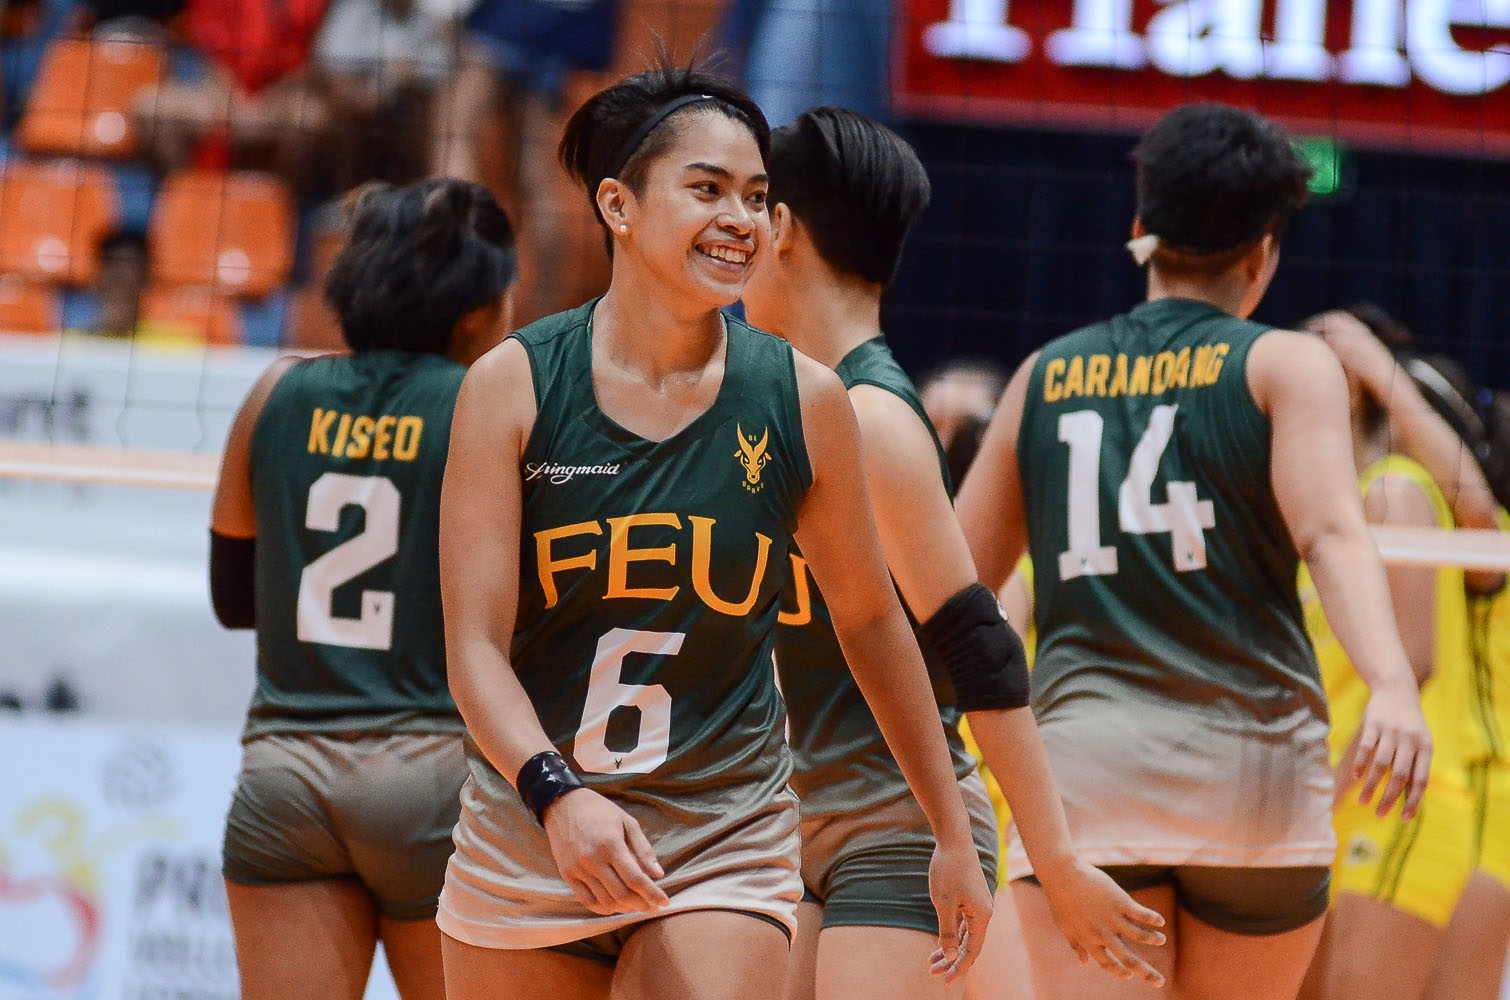 Tiebreaker Times Ivana Agudo, FEU Lady Tamaraws run past TIP for first win FEU News PVL Volleyball  Wielyn Margallo TIP Lady Engineers Shiela Kiseo Lois Florendo Ivana Agudo George Pascua Gel Cayuna FEU Women's Volleyball Boy Paril 2019 PVL Season 2019 PVL Collegiate Conference